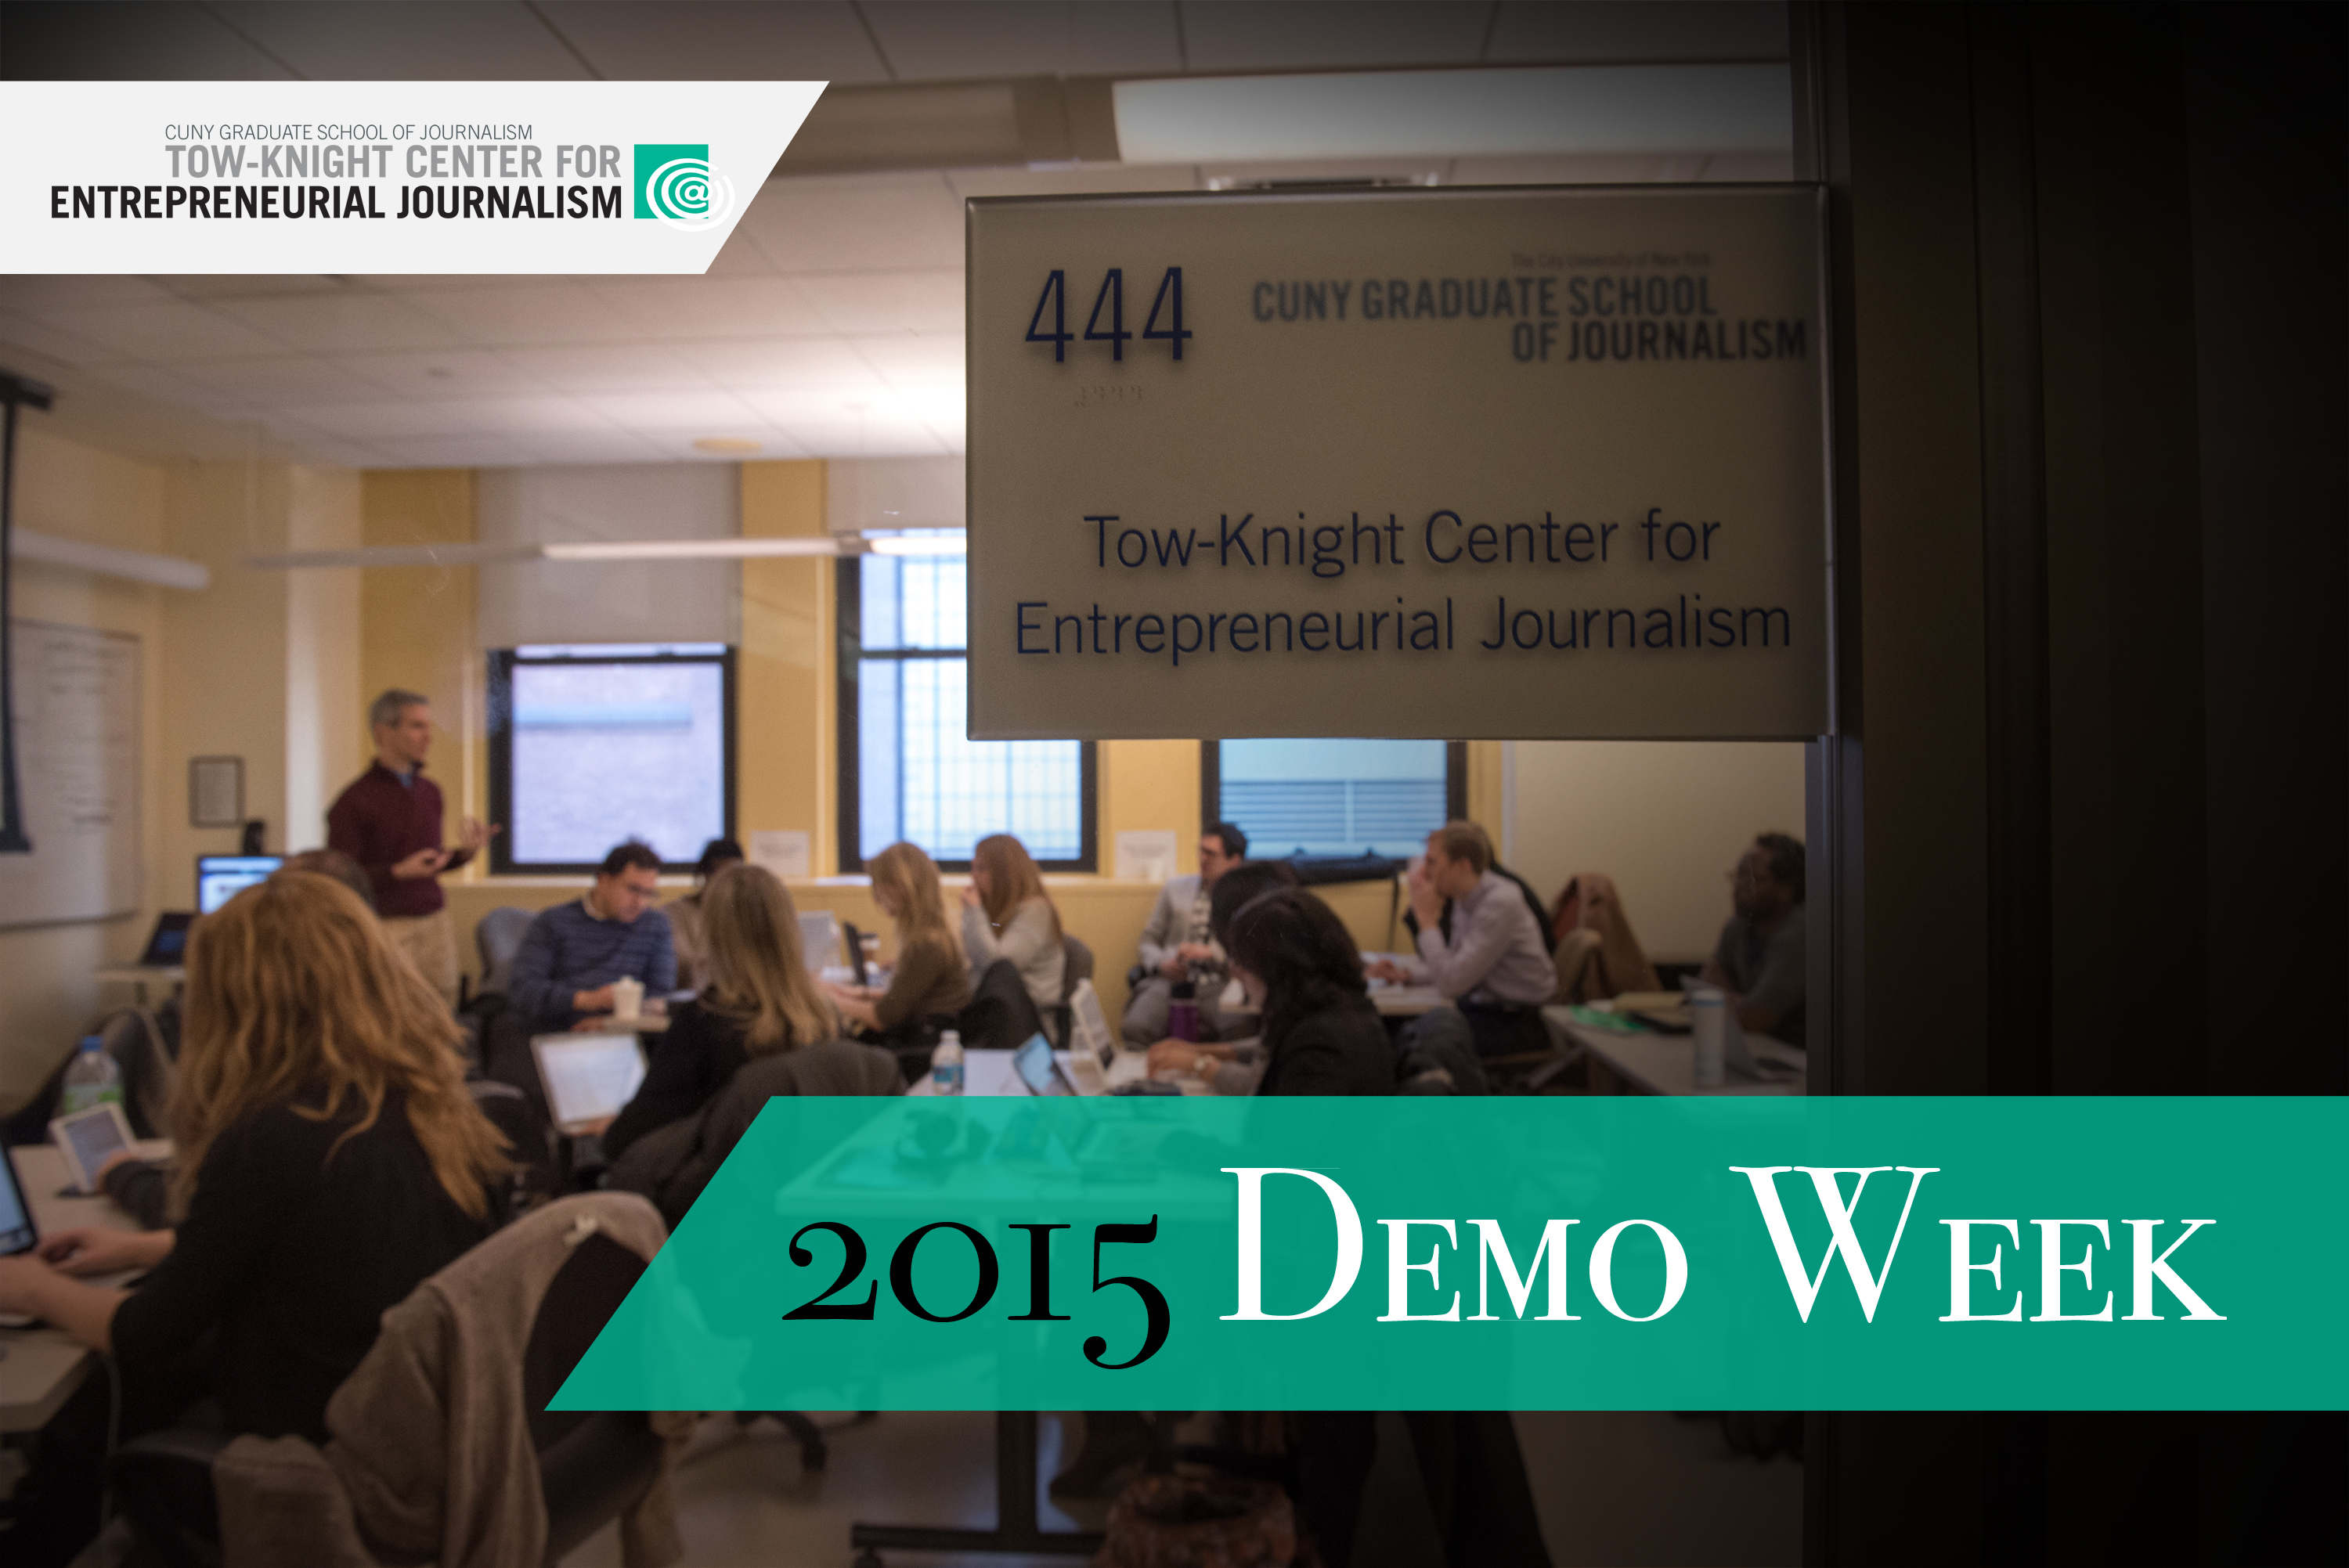 The 2015 Tow-Knight fellows are presenting their startup journalism projects